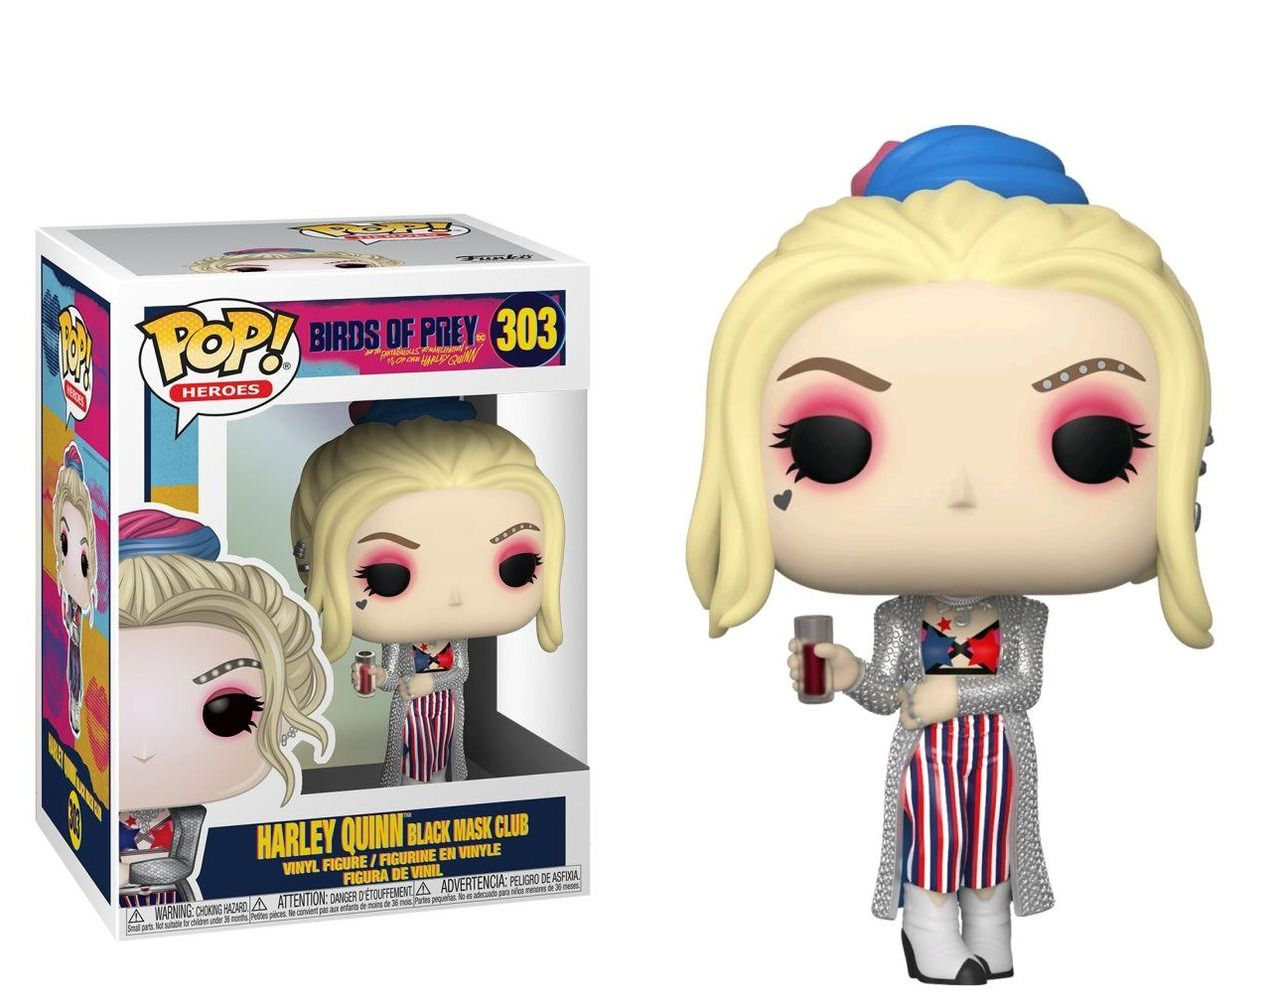 Funko Pop! Alerquina (Harley Quinn Black Mask Club): Aves de Rapina (Birds Of Prey) #303 - Funko